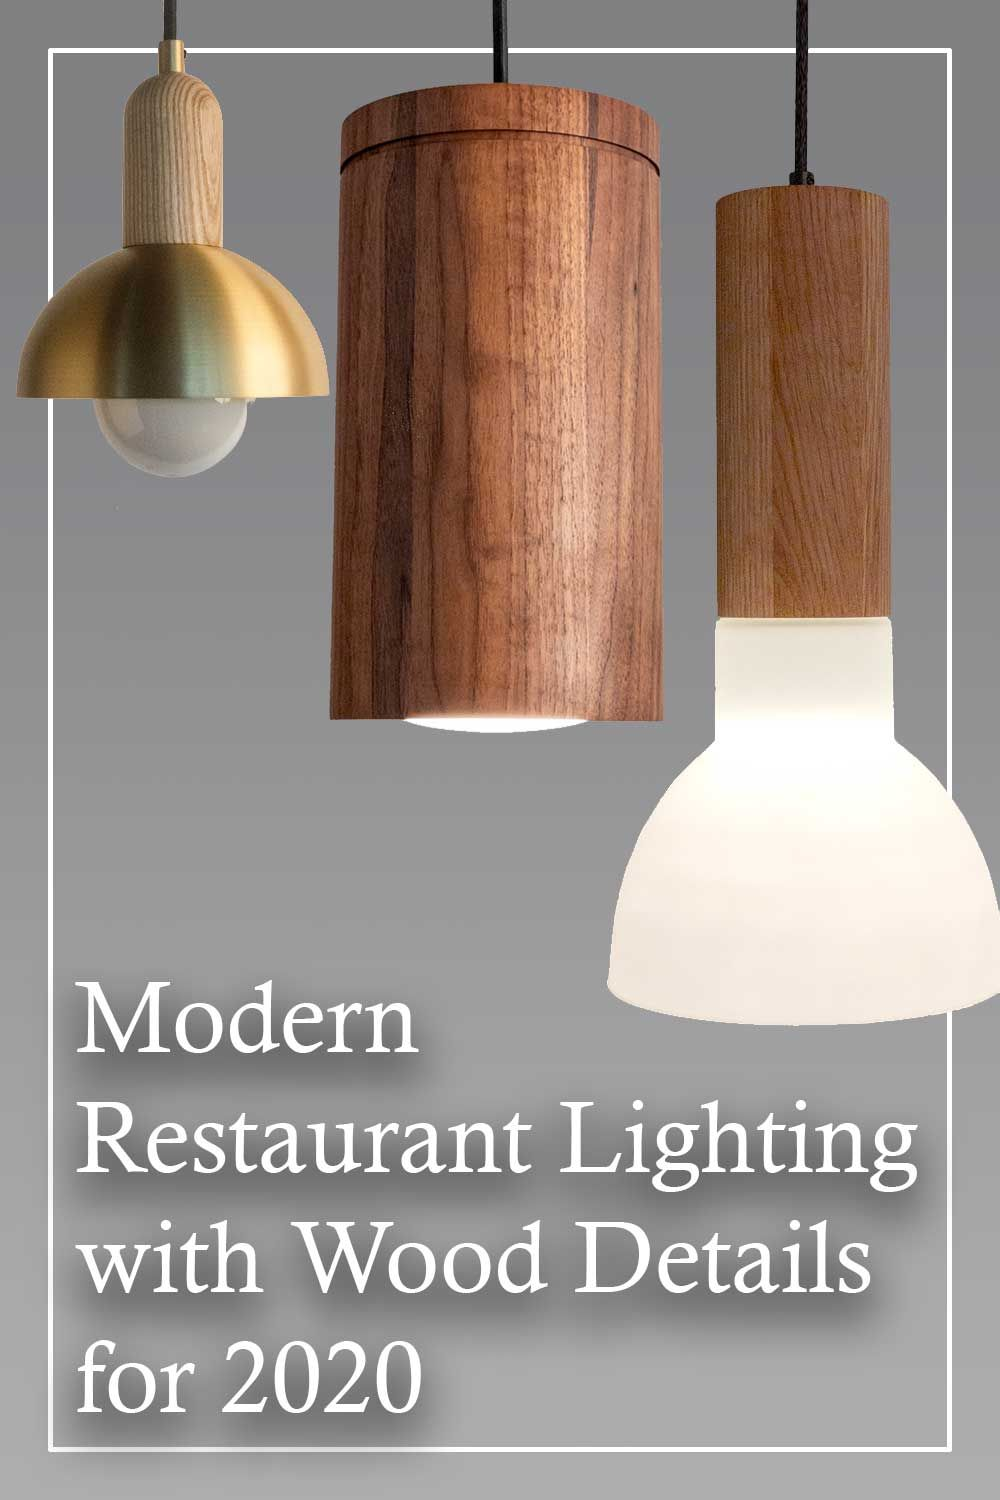 Modern Contemporary Pendant Lighting With Solid Wood Details